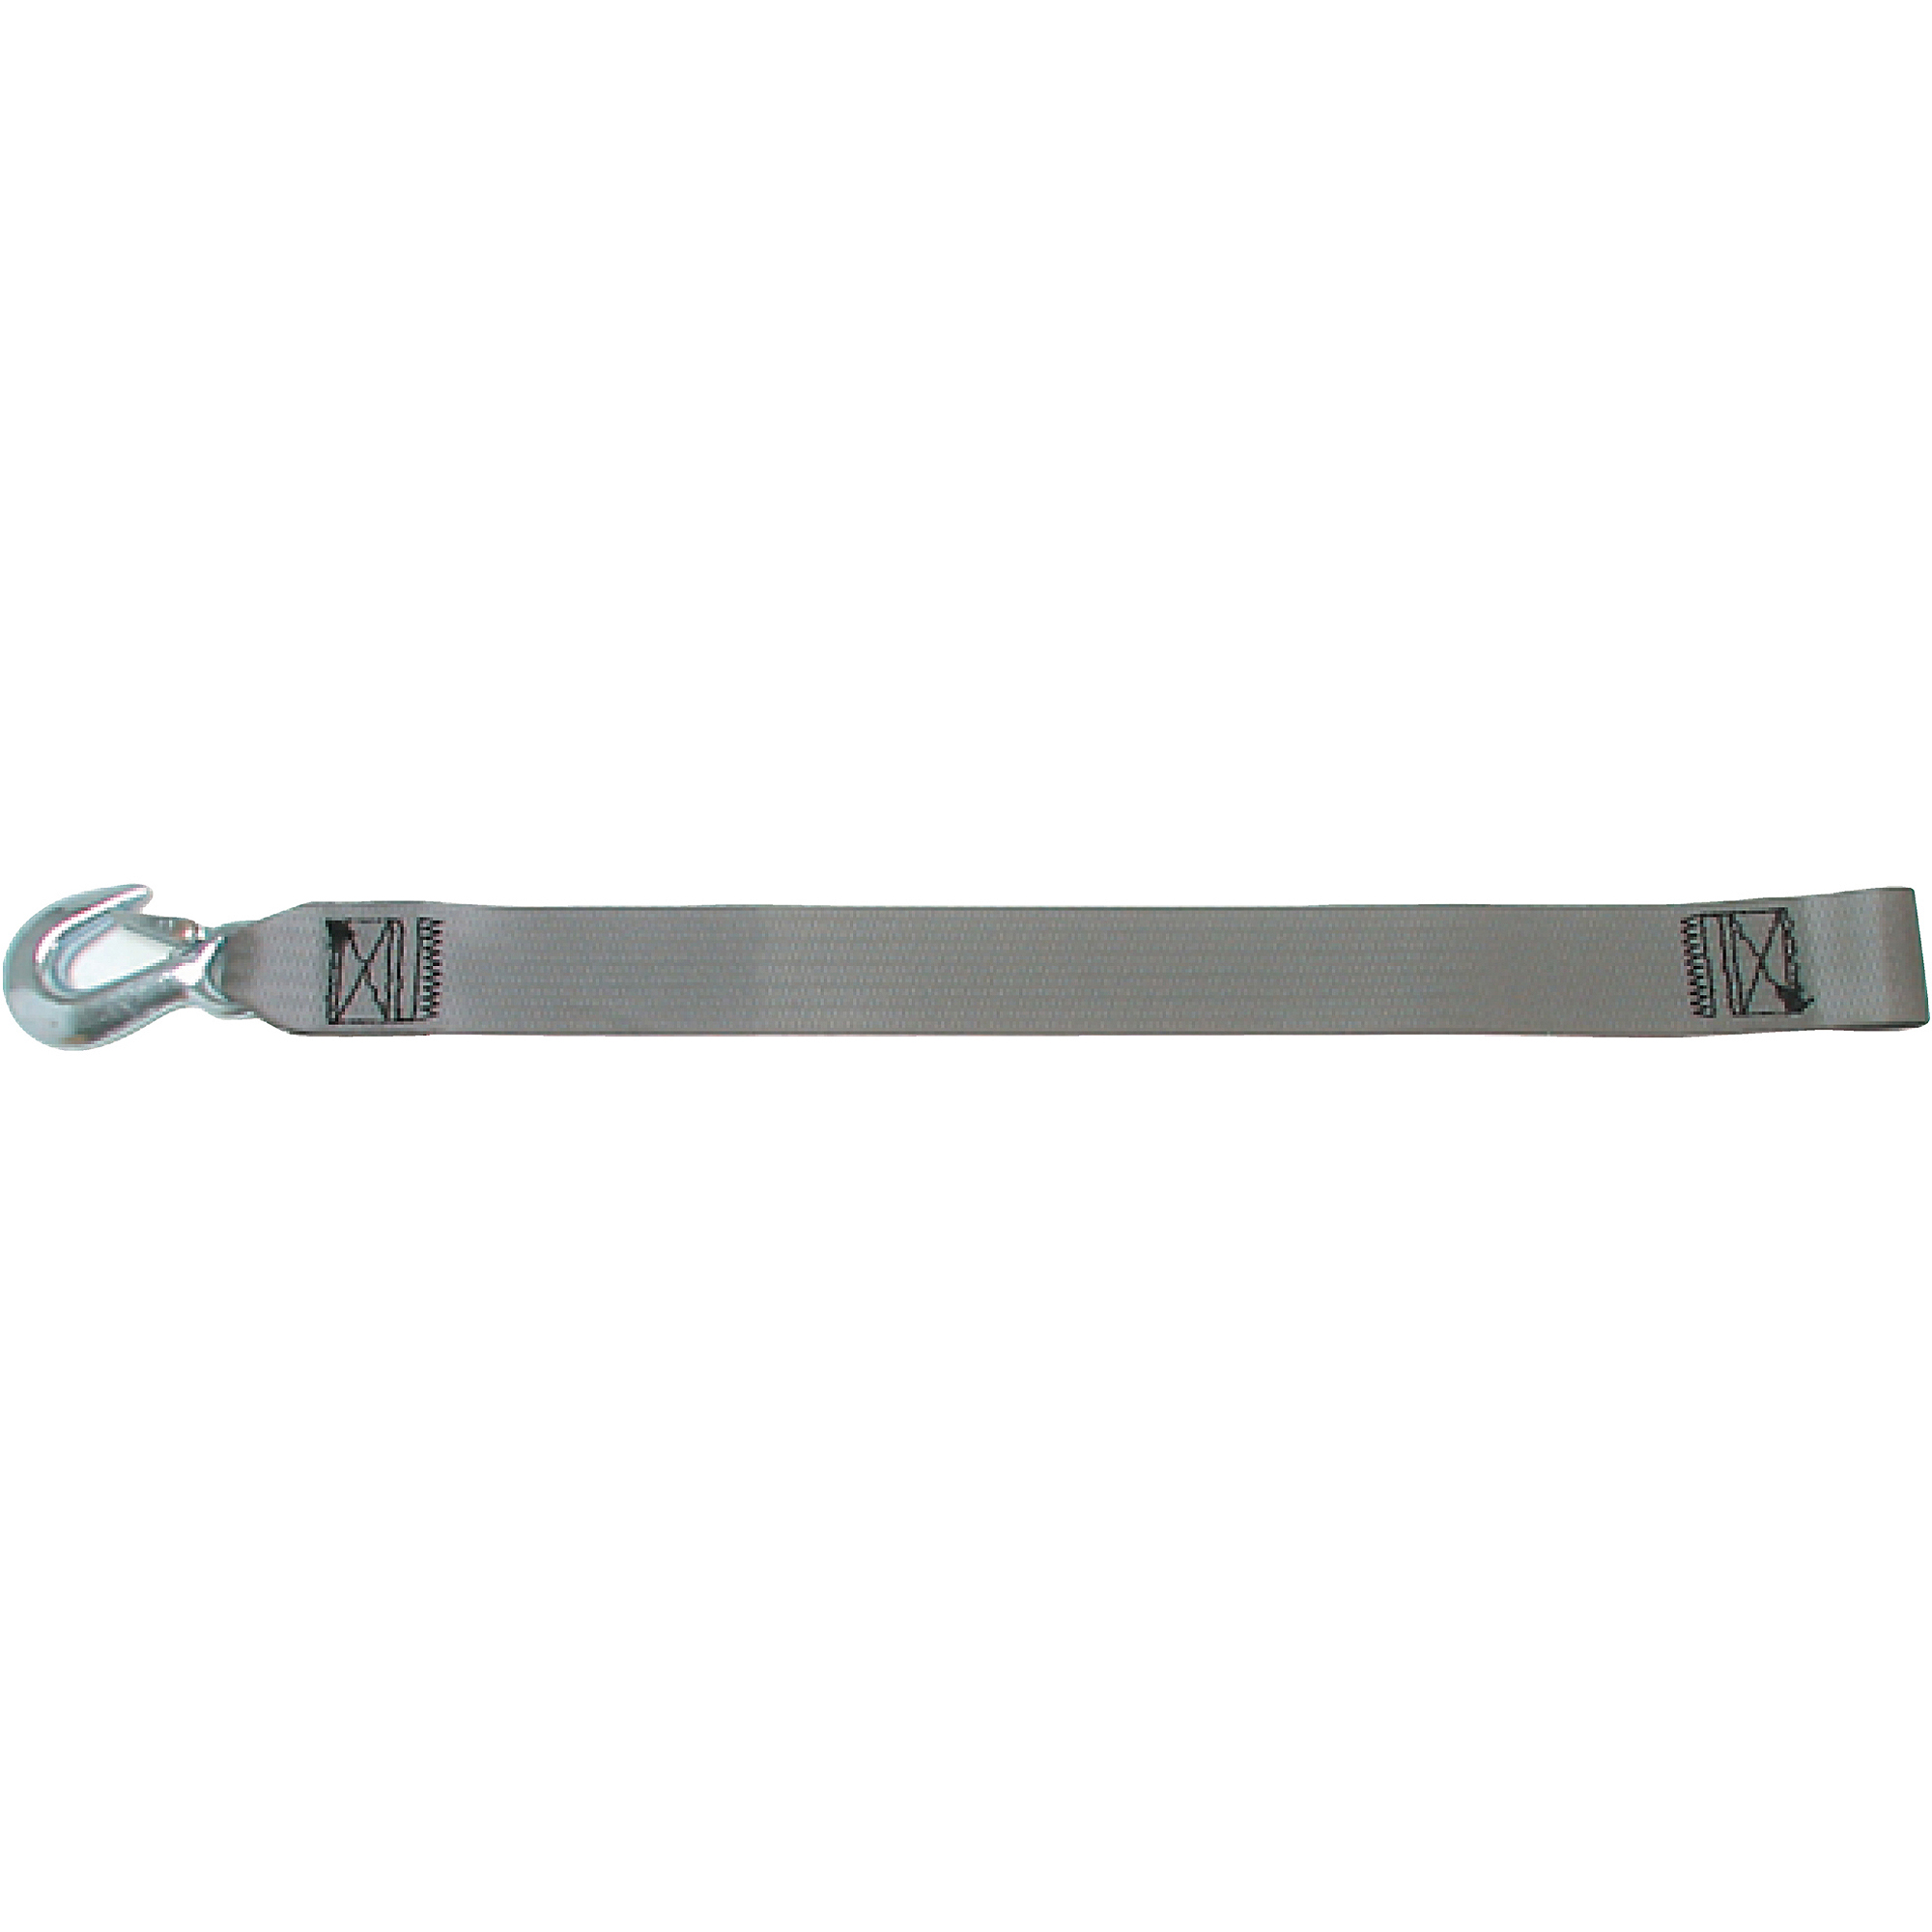 BoatBuckle Winch Strap with Loop End by Immi